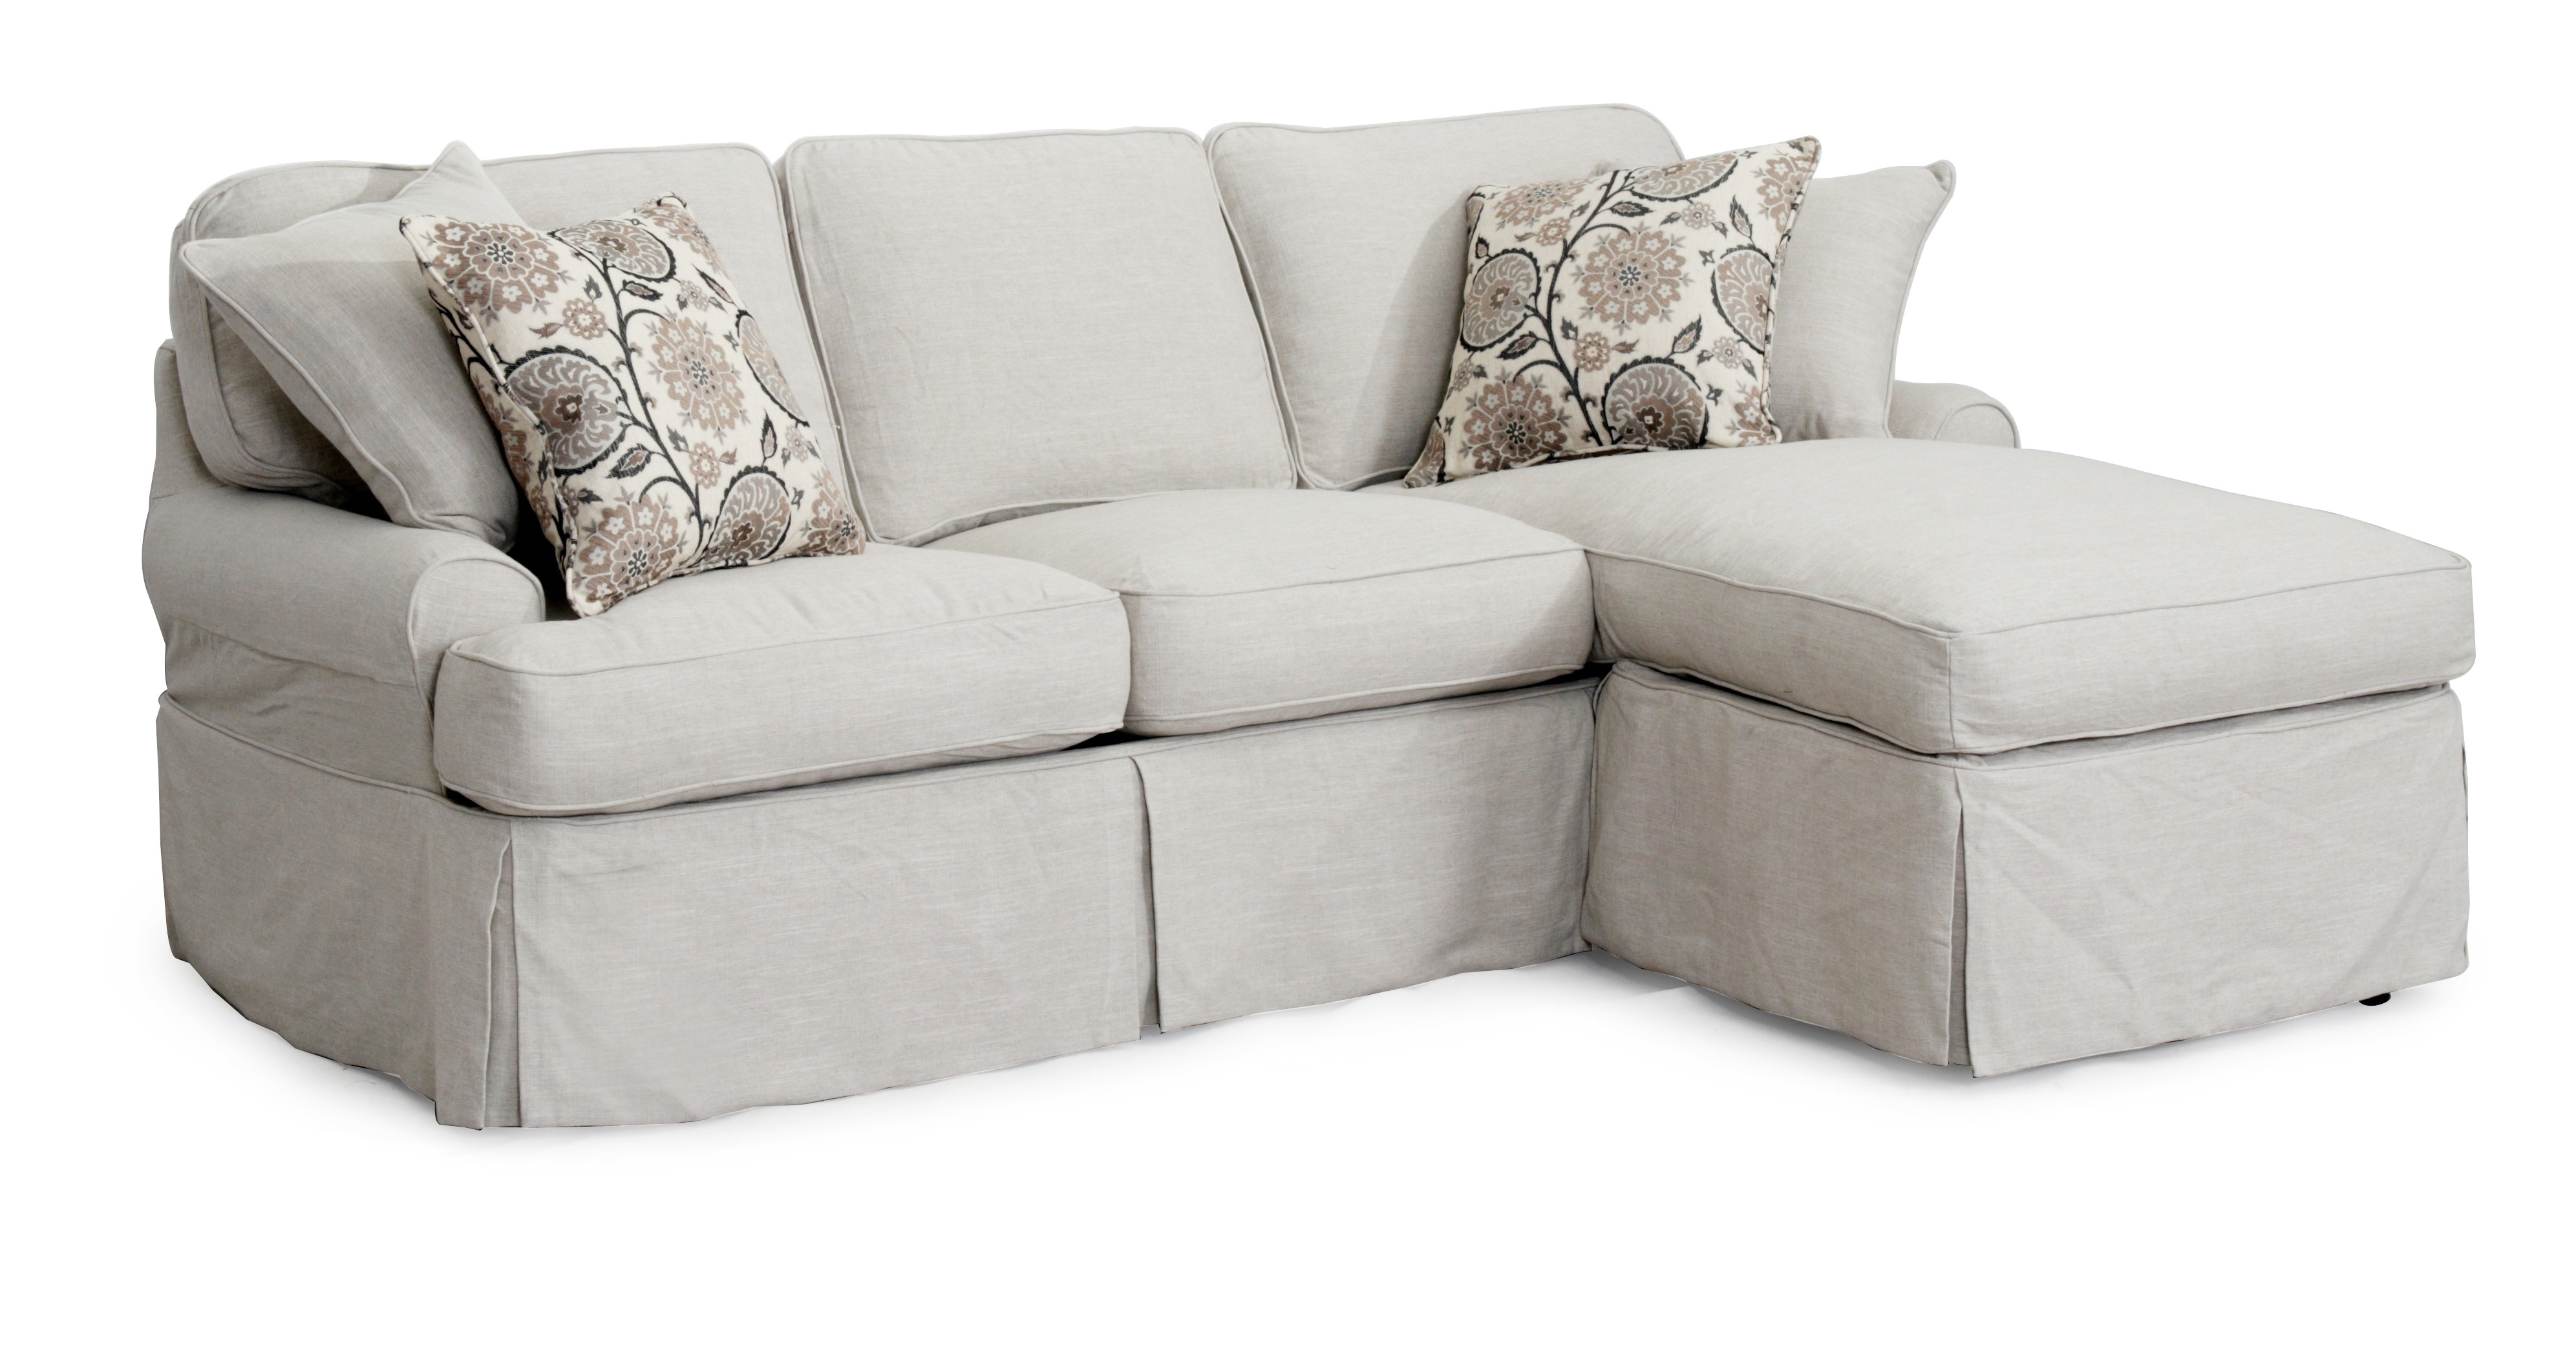 Sleeper Sofas Archives – Interior Design Throughout Well Liked Sleeper Sofa Chaises (View 11 of 15)